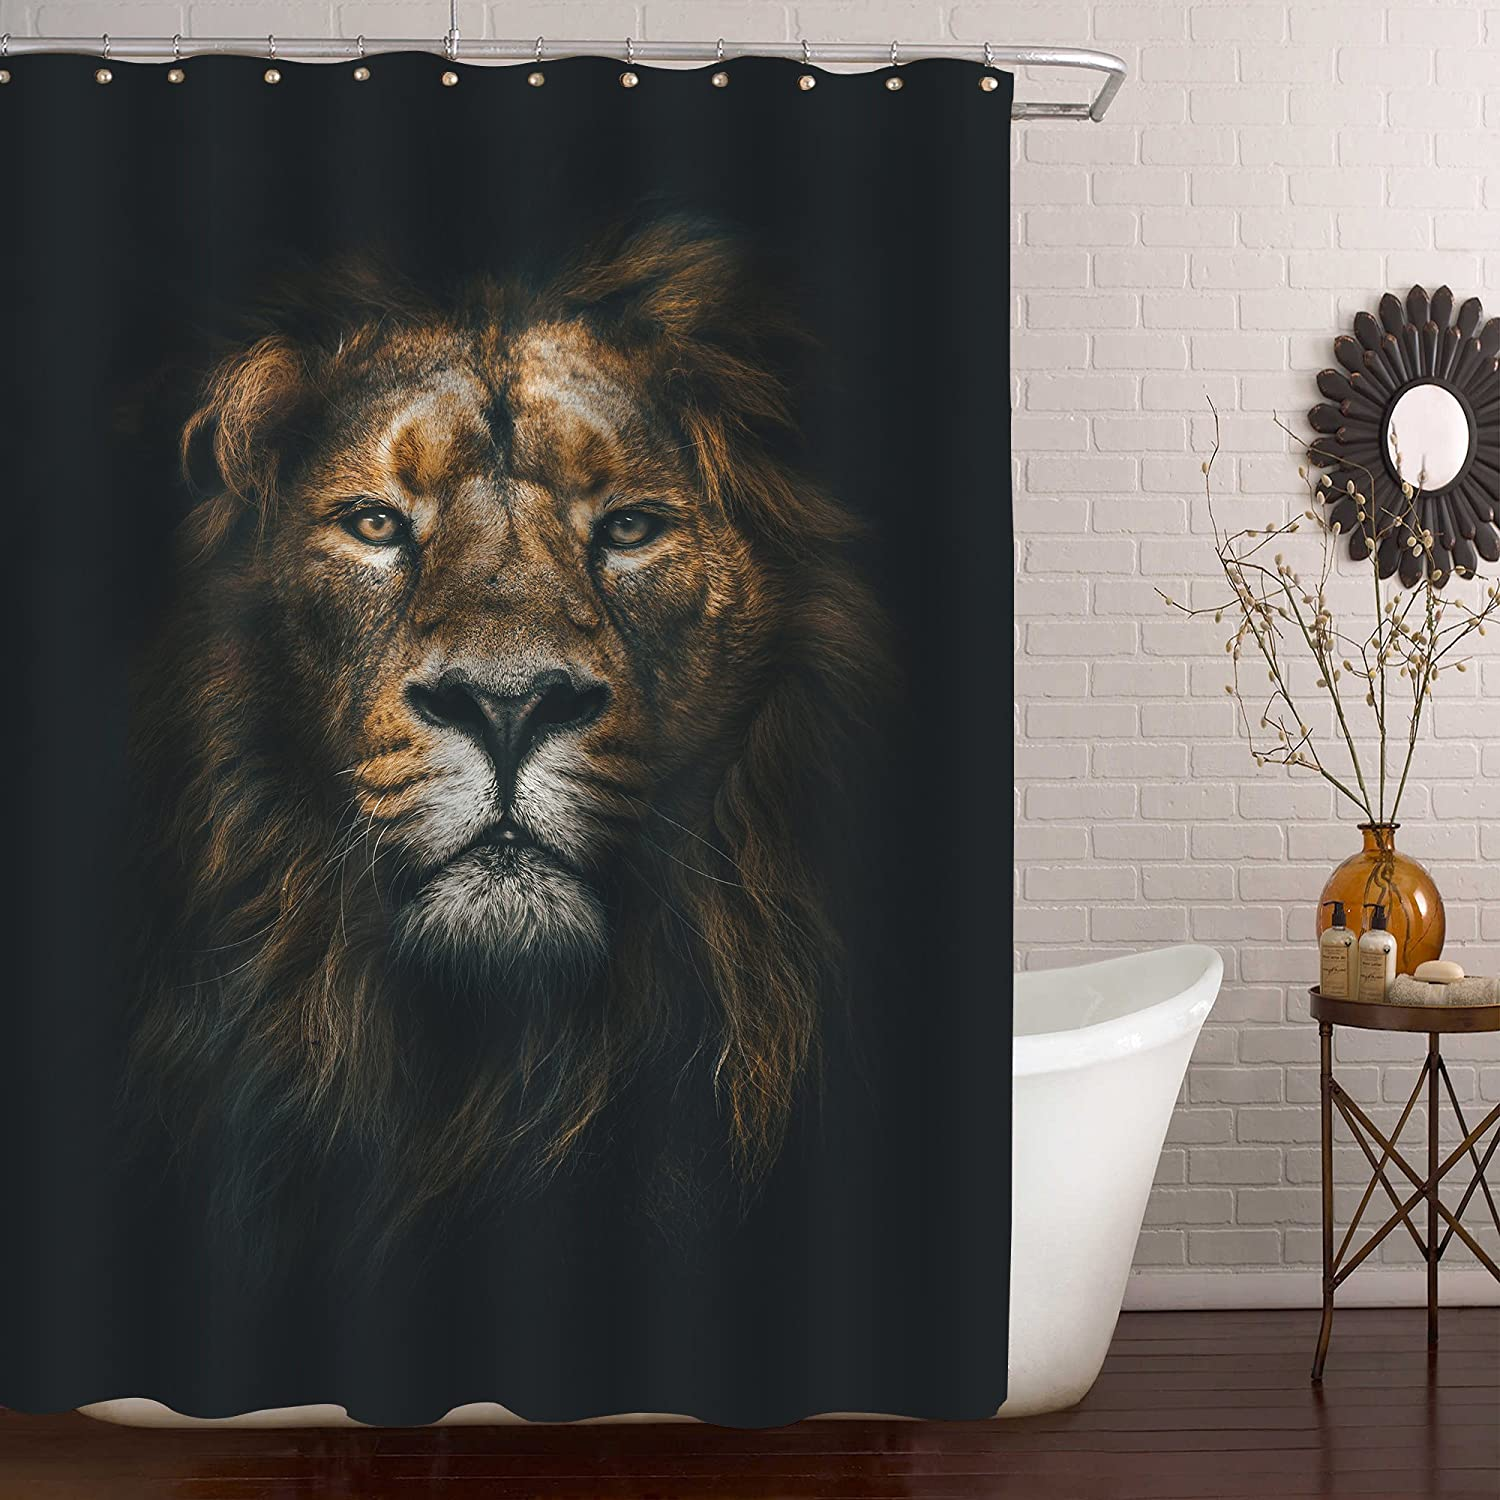 MitoVilla Cool Lion Shower Curtain Set with Hooks, Powerful Majestic Lion King Head Bathroom Accessories, Wildlife Themed Home Room Decor for Mens, Kids Boy and Animal Lover Gifts, Black Gold, 72 x 72